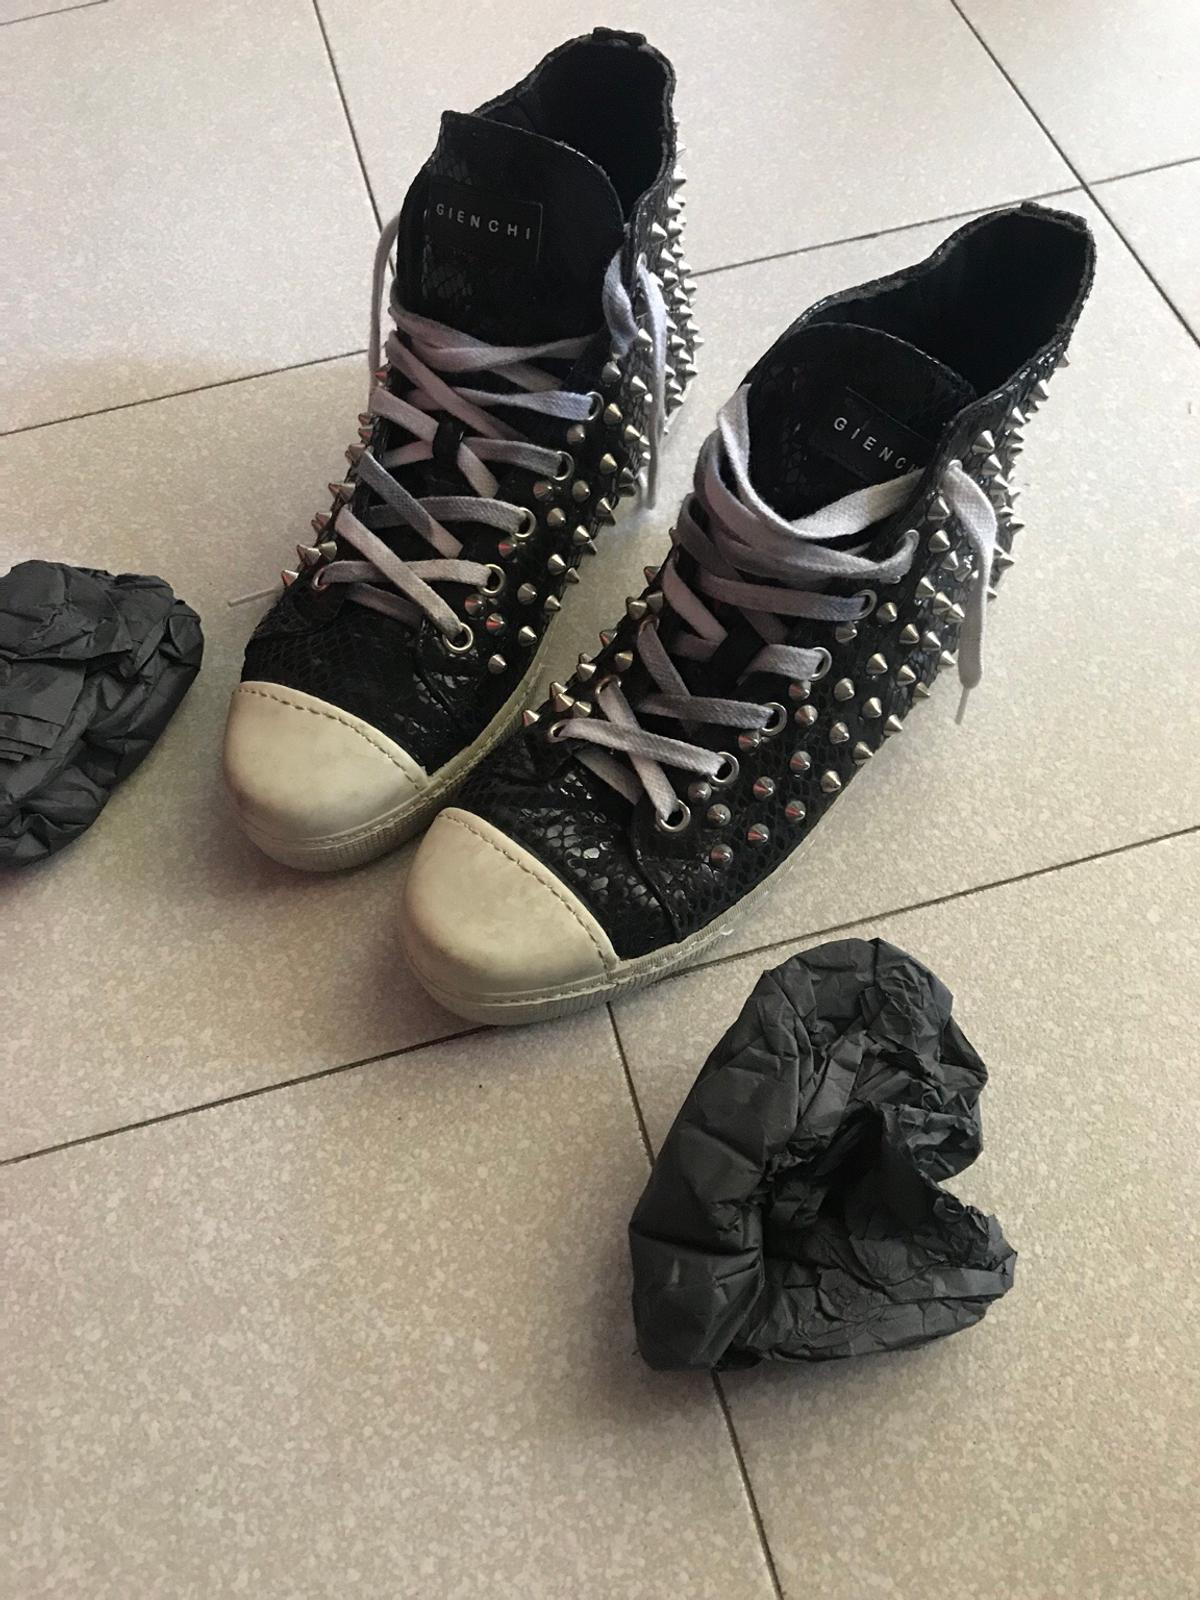 check out b3d27 391d5 Sneakers Gienchi in 20139 Milano for €130.00 for sale | Shpock